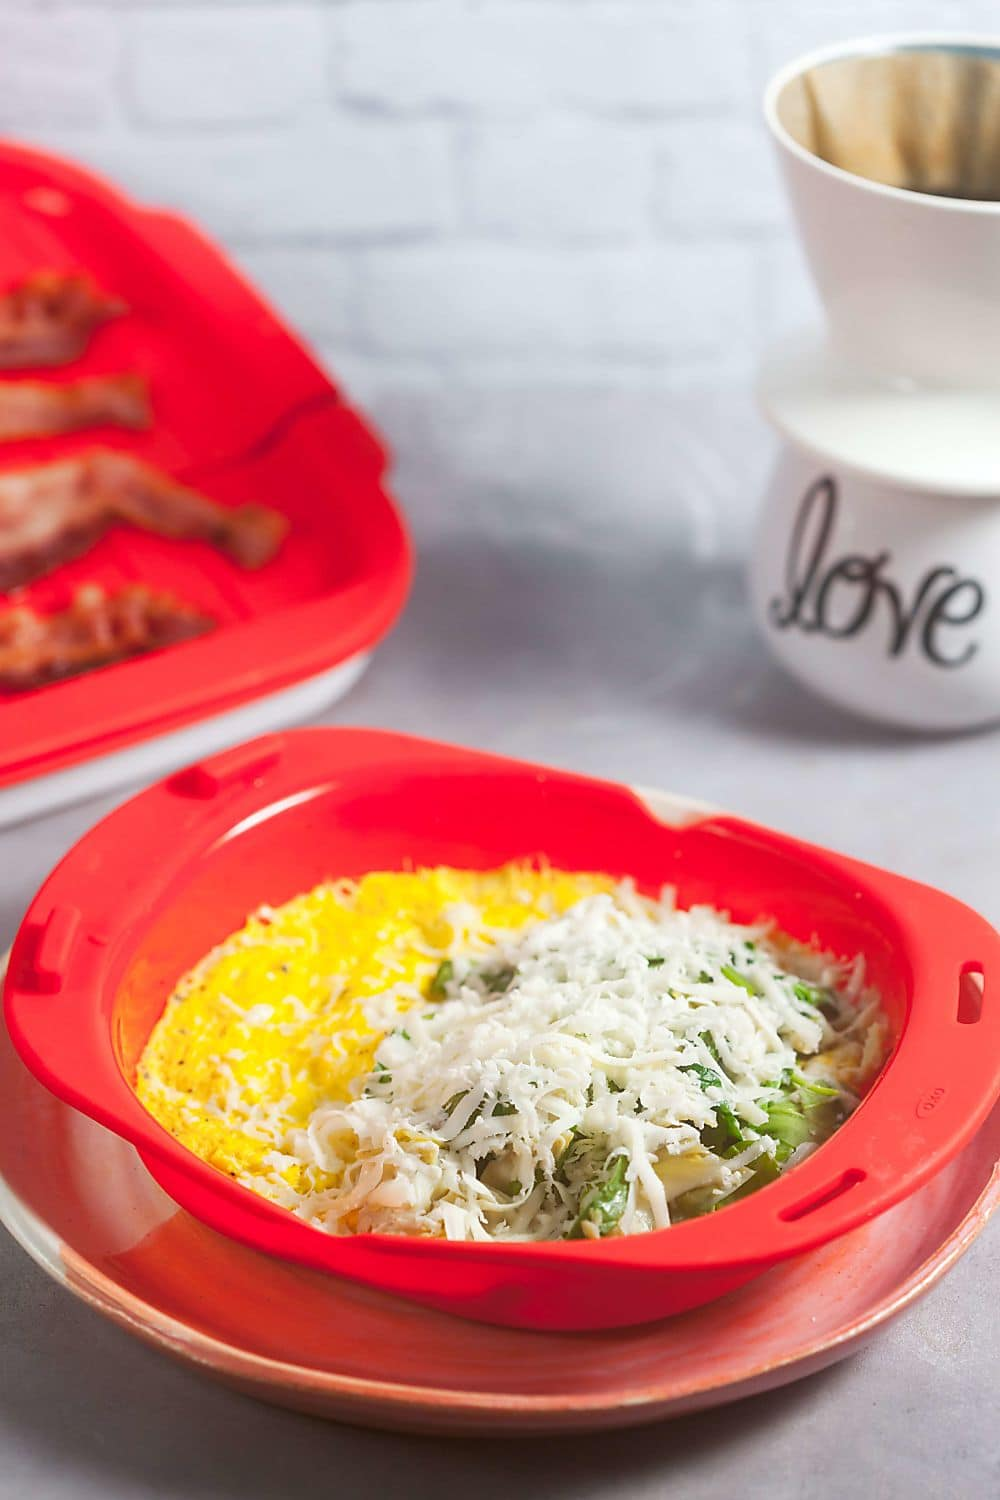 3-Minute Spinach Artichoke Omelet - OXO Microwave Omelet Maker Review